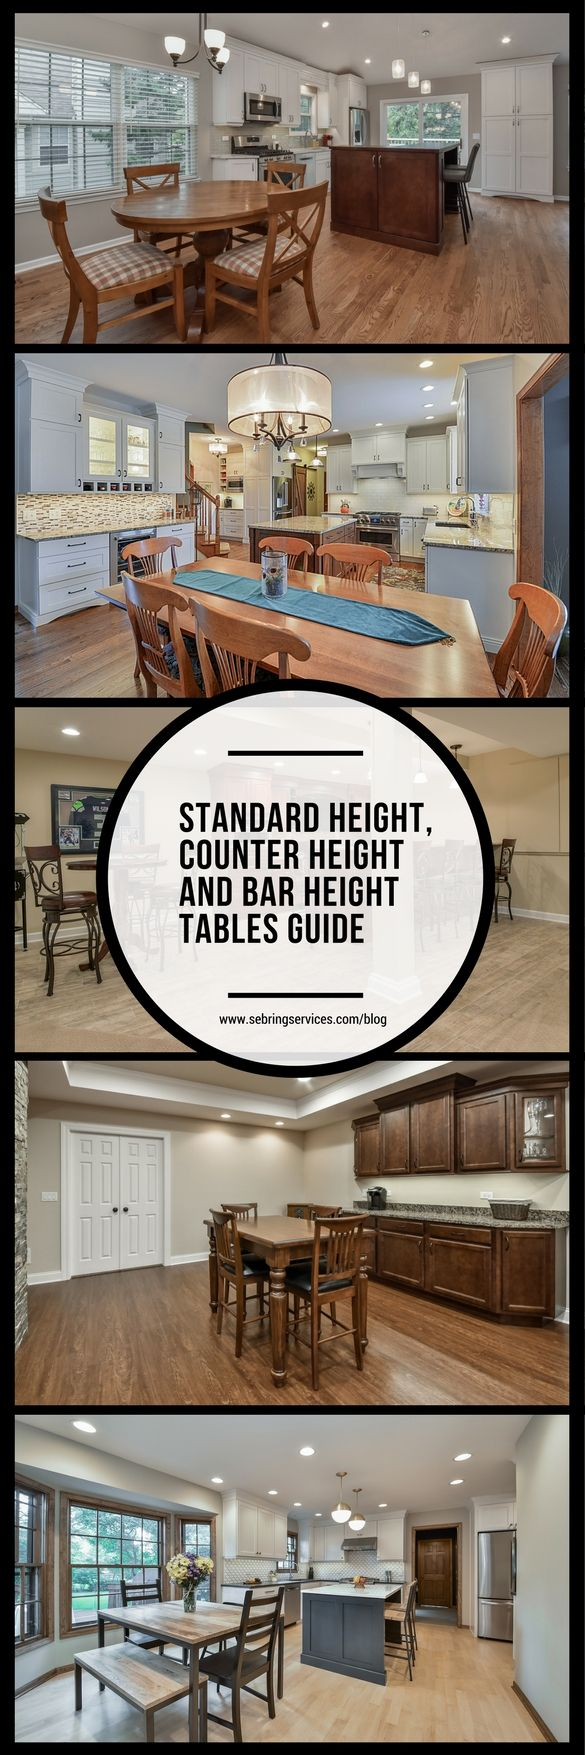 If you are in the process of planning out new kitchen and dining spaces, you may be wondering how the height of your tables and chairs will impact your daily life and the enjoyment of your newly remodeled spaces. Perhaps you're thinking of having a counter eating area built in or you want to get away from the standard dining room table, so you're considering a counter or bar height table. Either one can be beneficial for different scenarios.